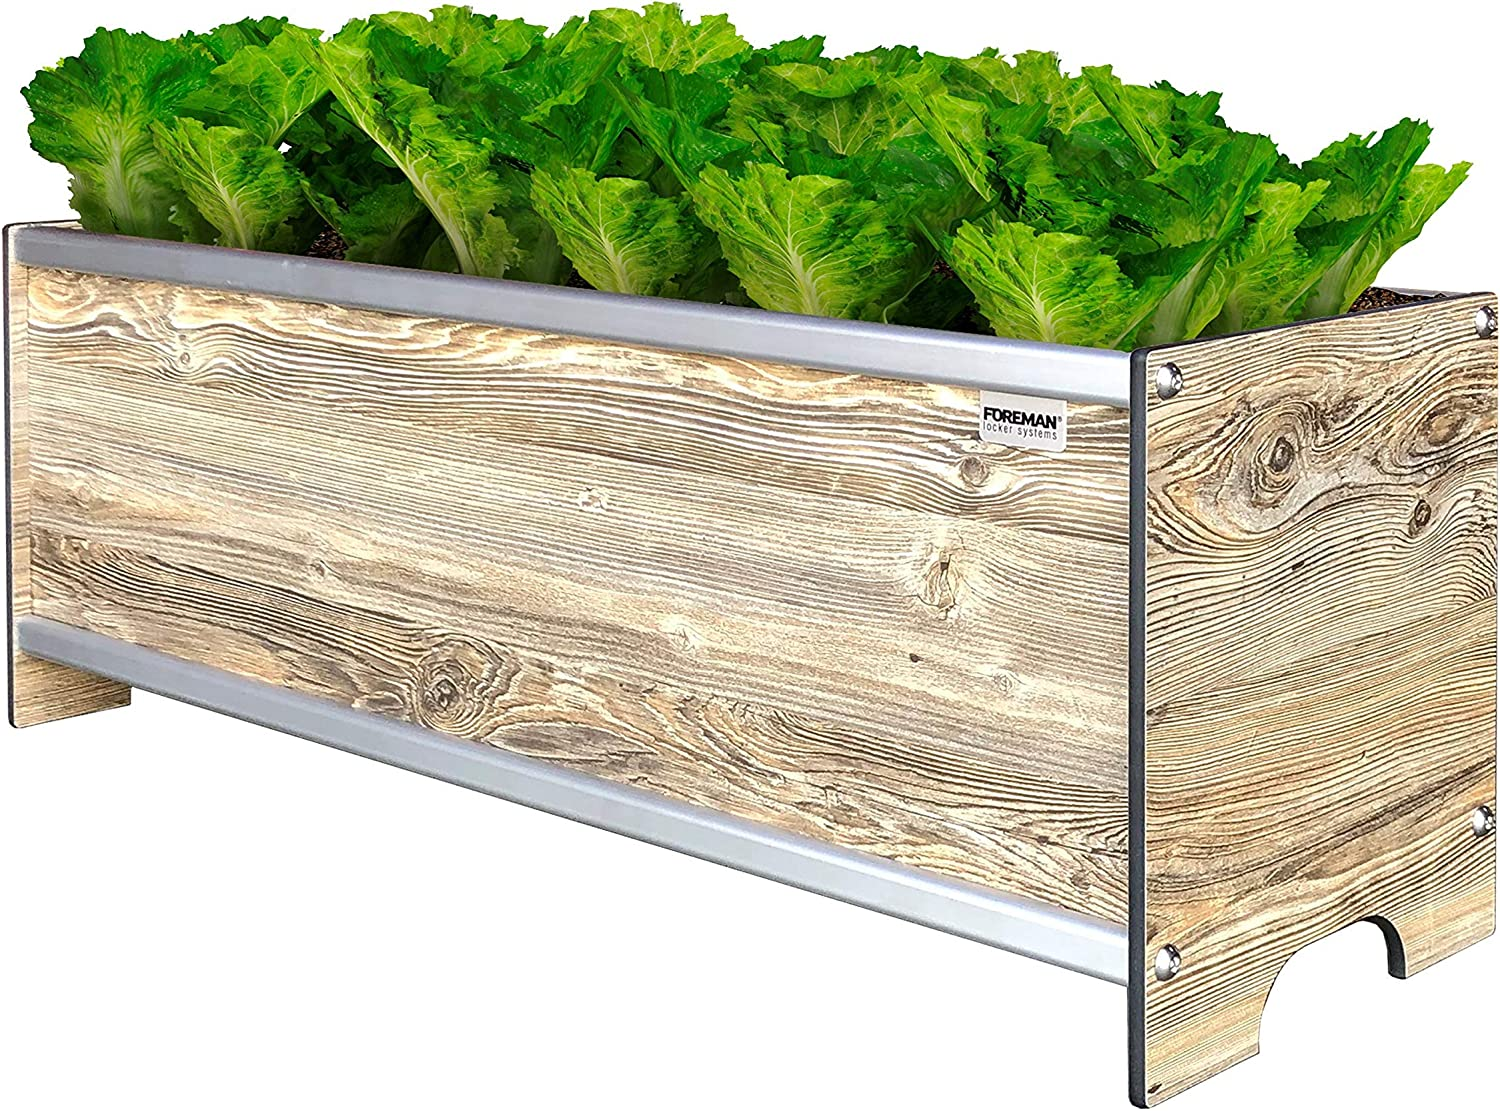 "Foreman Raised Garden Bed 36""Lx12""Wx14""H Premium HPL Plastic Wood Grain Aluminum Frame Elevated Planter Box for Backyard Patio Balcony, Amaretto"